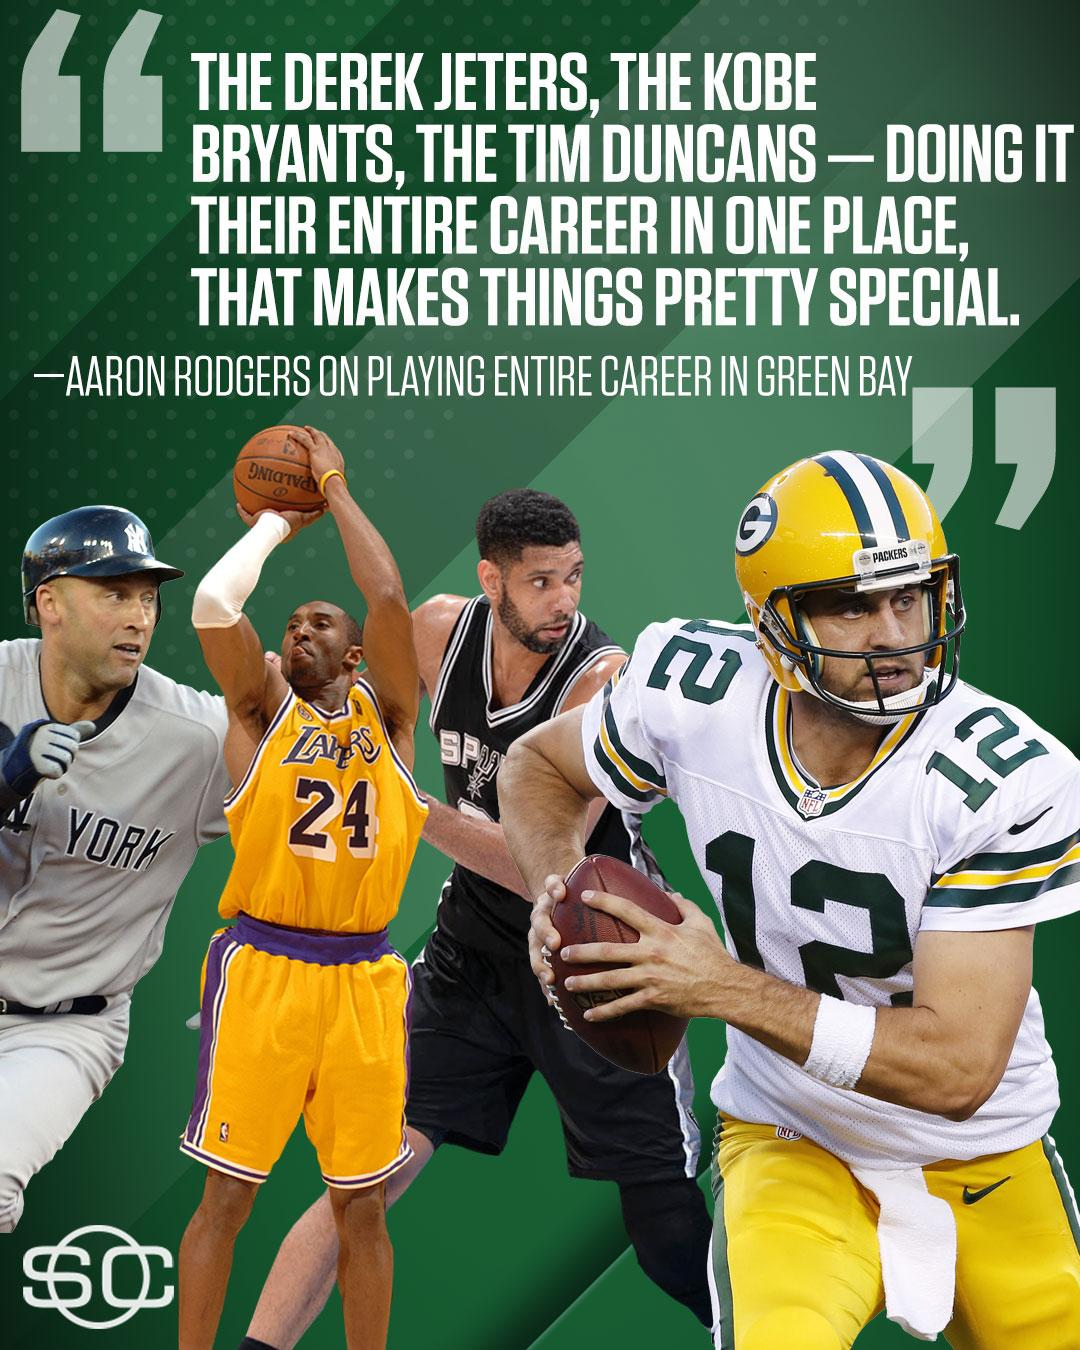 Aaron Rodgers knows exactly where he wants to be when he turns 40. https://t.co/KflwmwftqJ https://t.co/JnNGJUWsb4